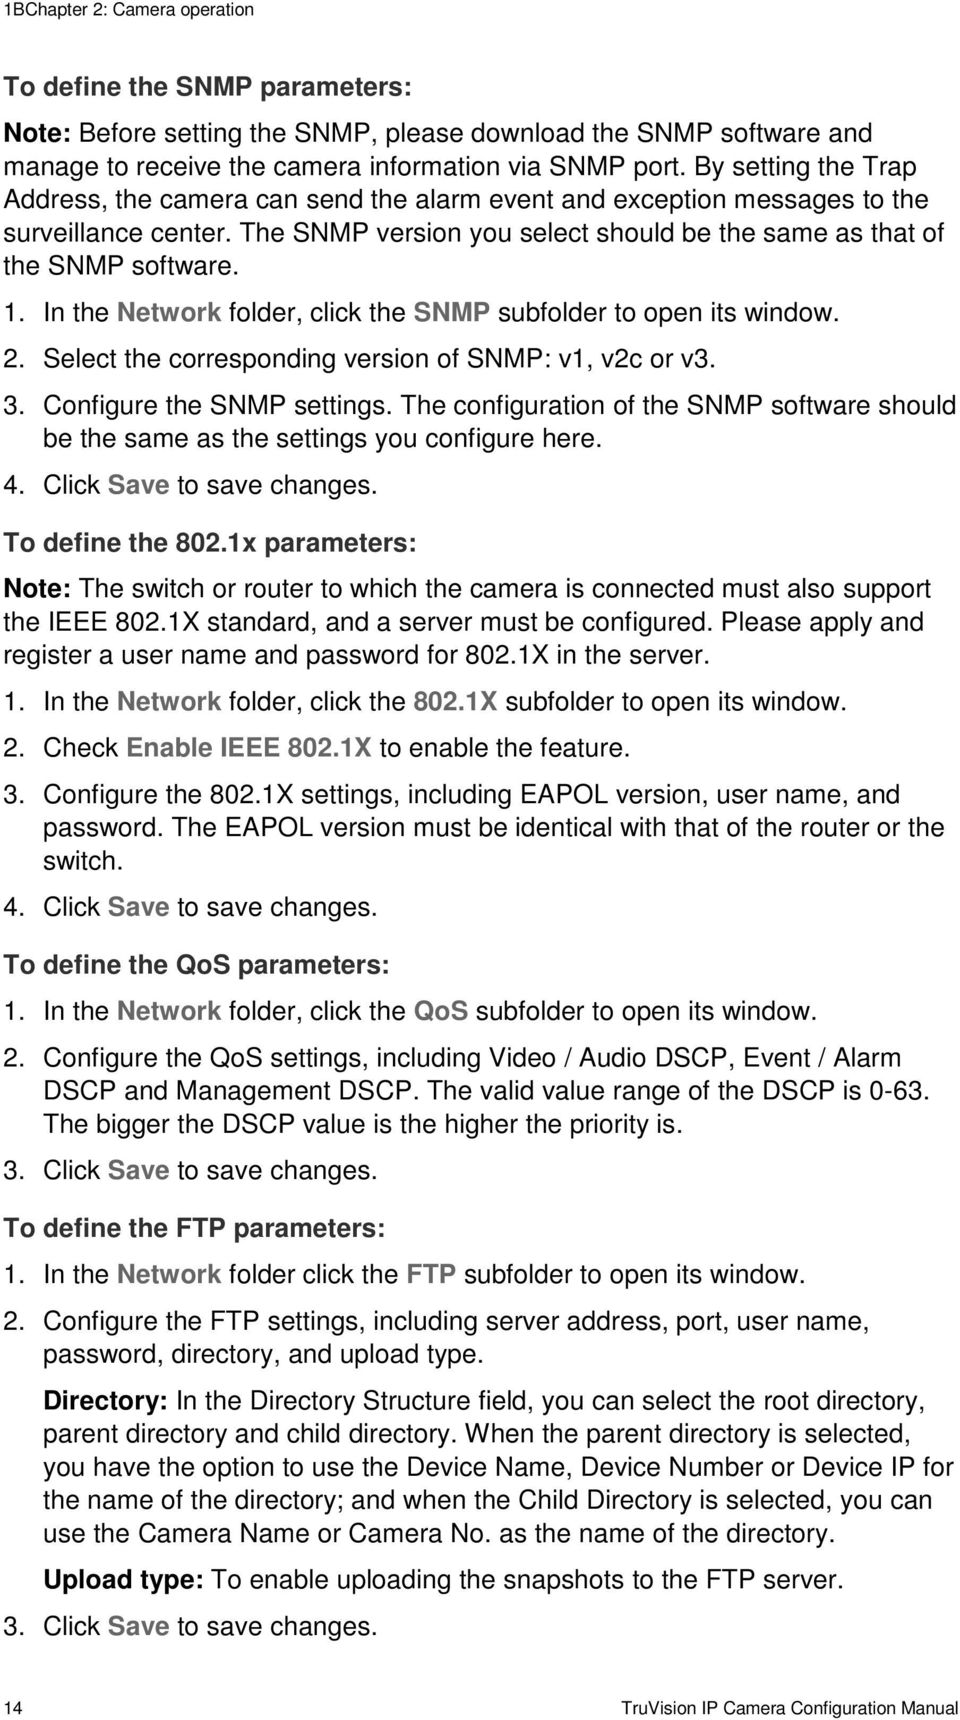 In the Network folder, click the SNMP subfolder to open its window. 2. Select the corresponding version of SNMP: v1, v2c or v3. 3. Configure the SNMP settings.